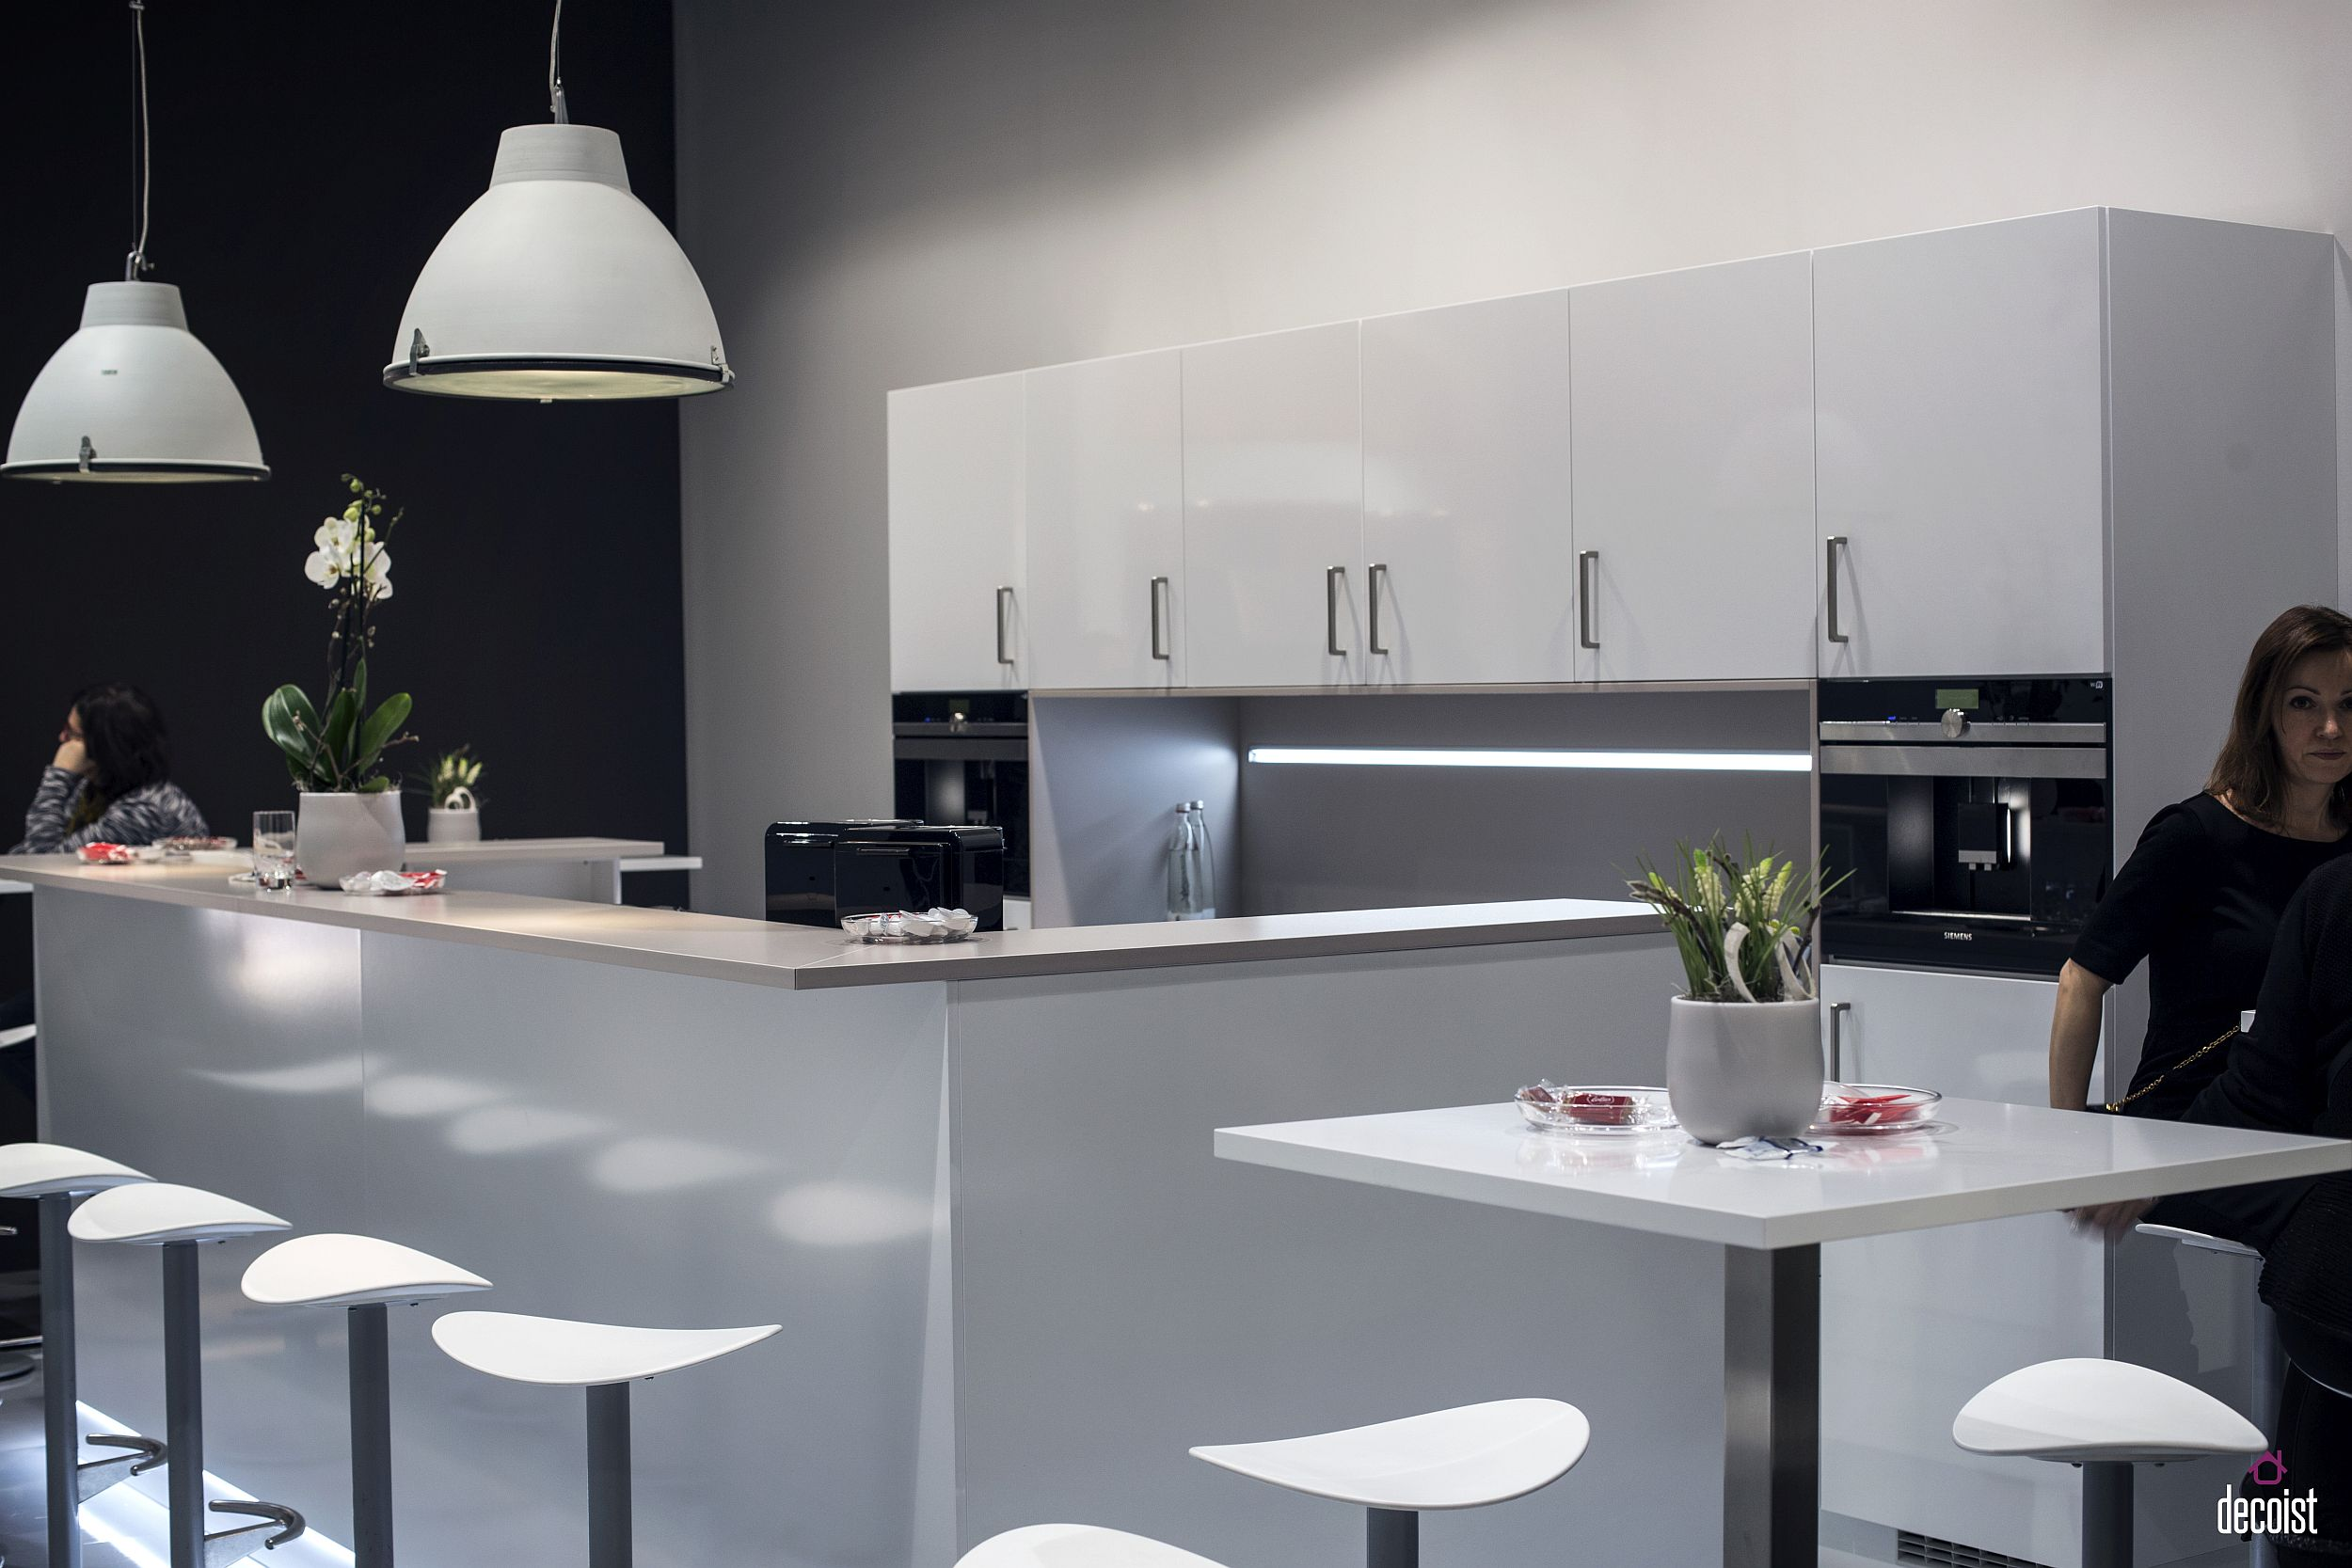 Slim breakfast bar top along with additional sitting and counter space in the white kitchen